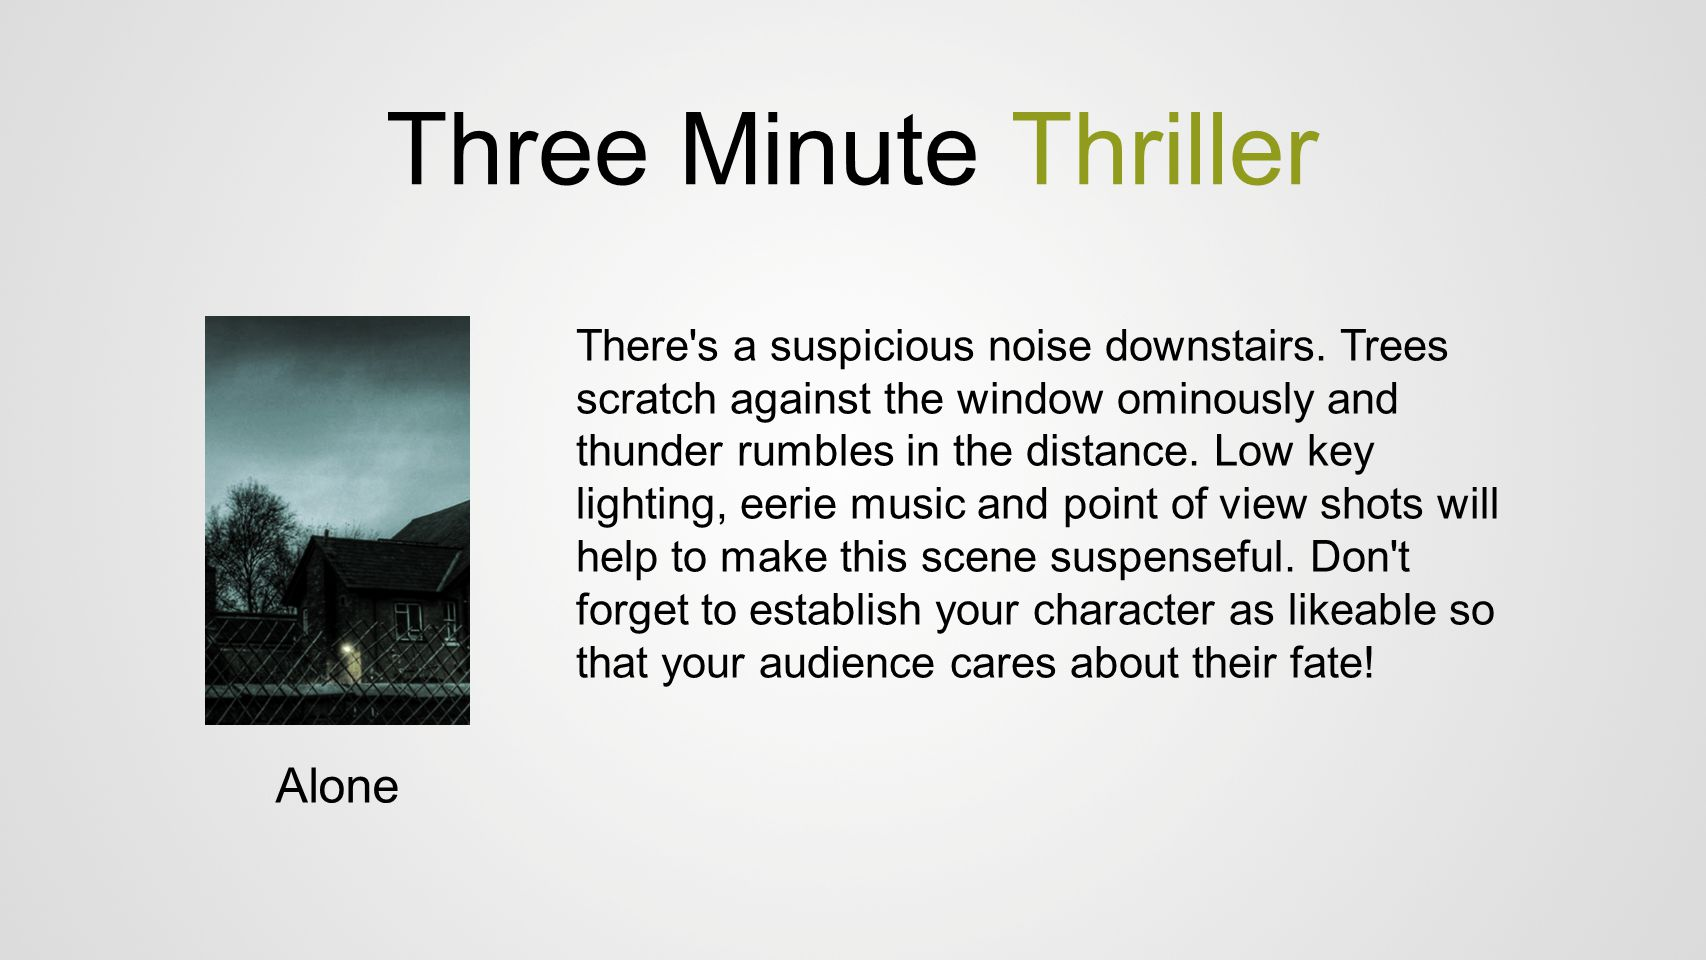 Three Minute Thriller Alone There's a suspicious noise downstairs. Trees scratch against the window ominously and thunder rumbles in the distance. Low